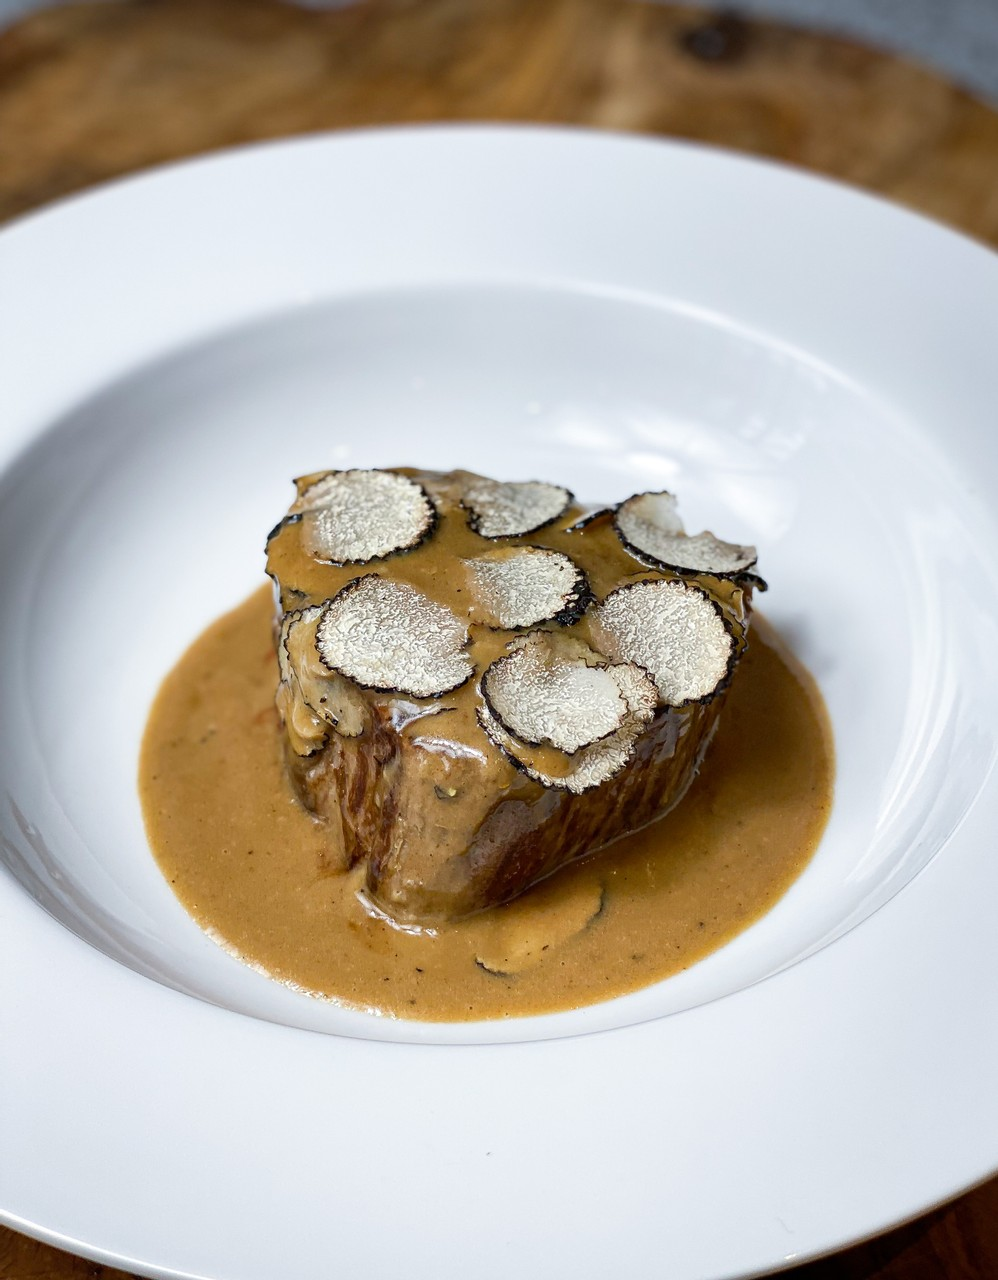 Fillet Steak with Summer Truffle and Porcini Sauce